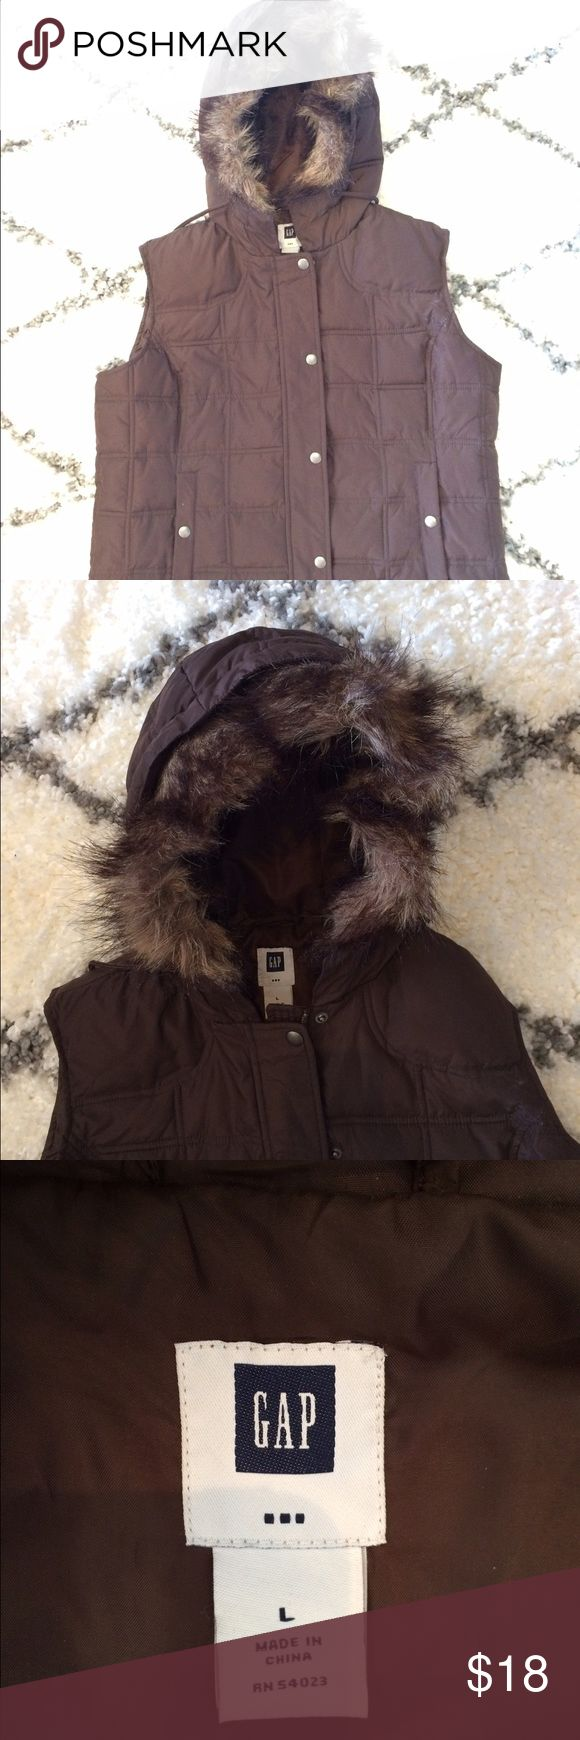 Gap fashion vest Brown vest from Gap with removable faux fur along the hood. Great item for the layered look!  Excellent condition! GAP Jackets & Coats Vests